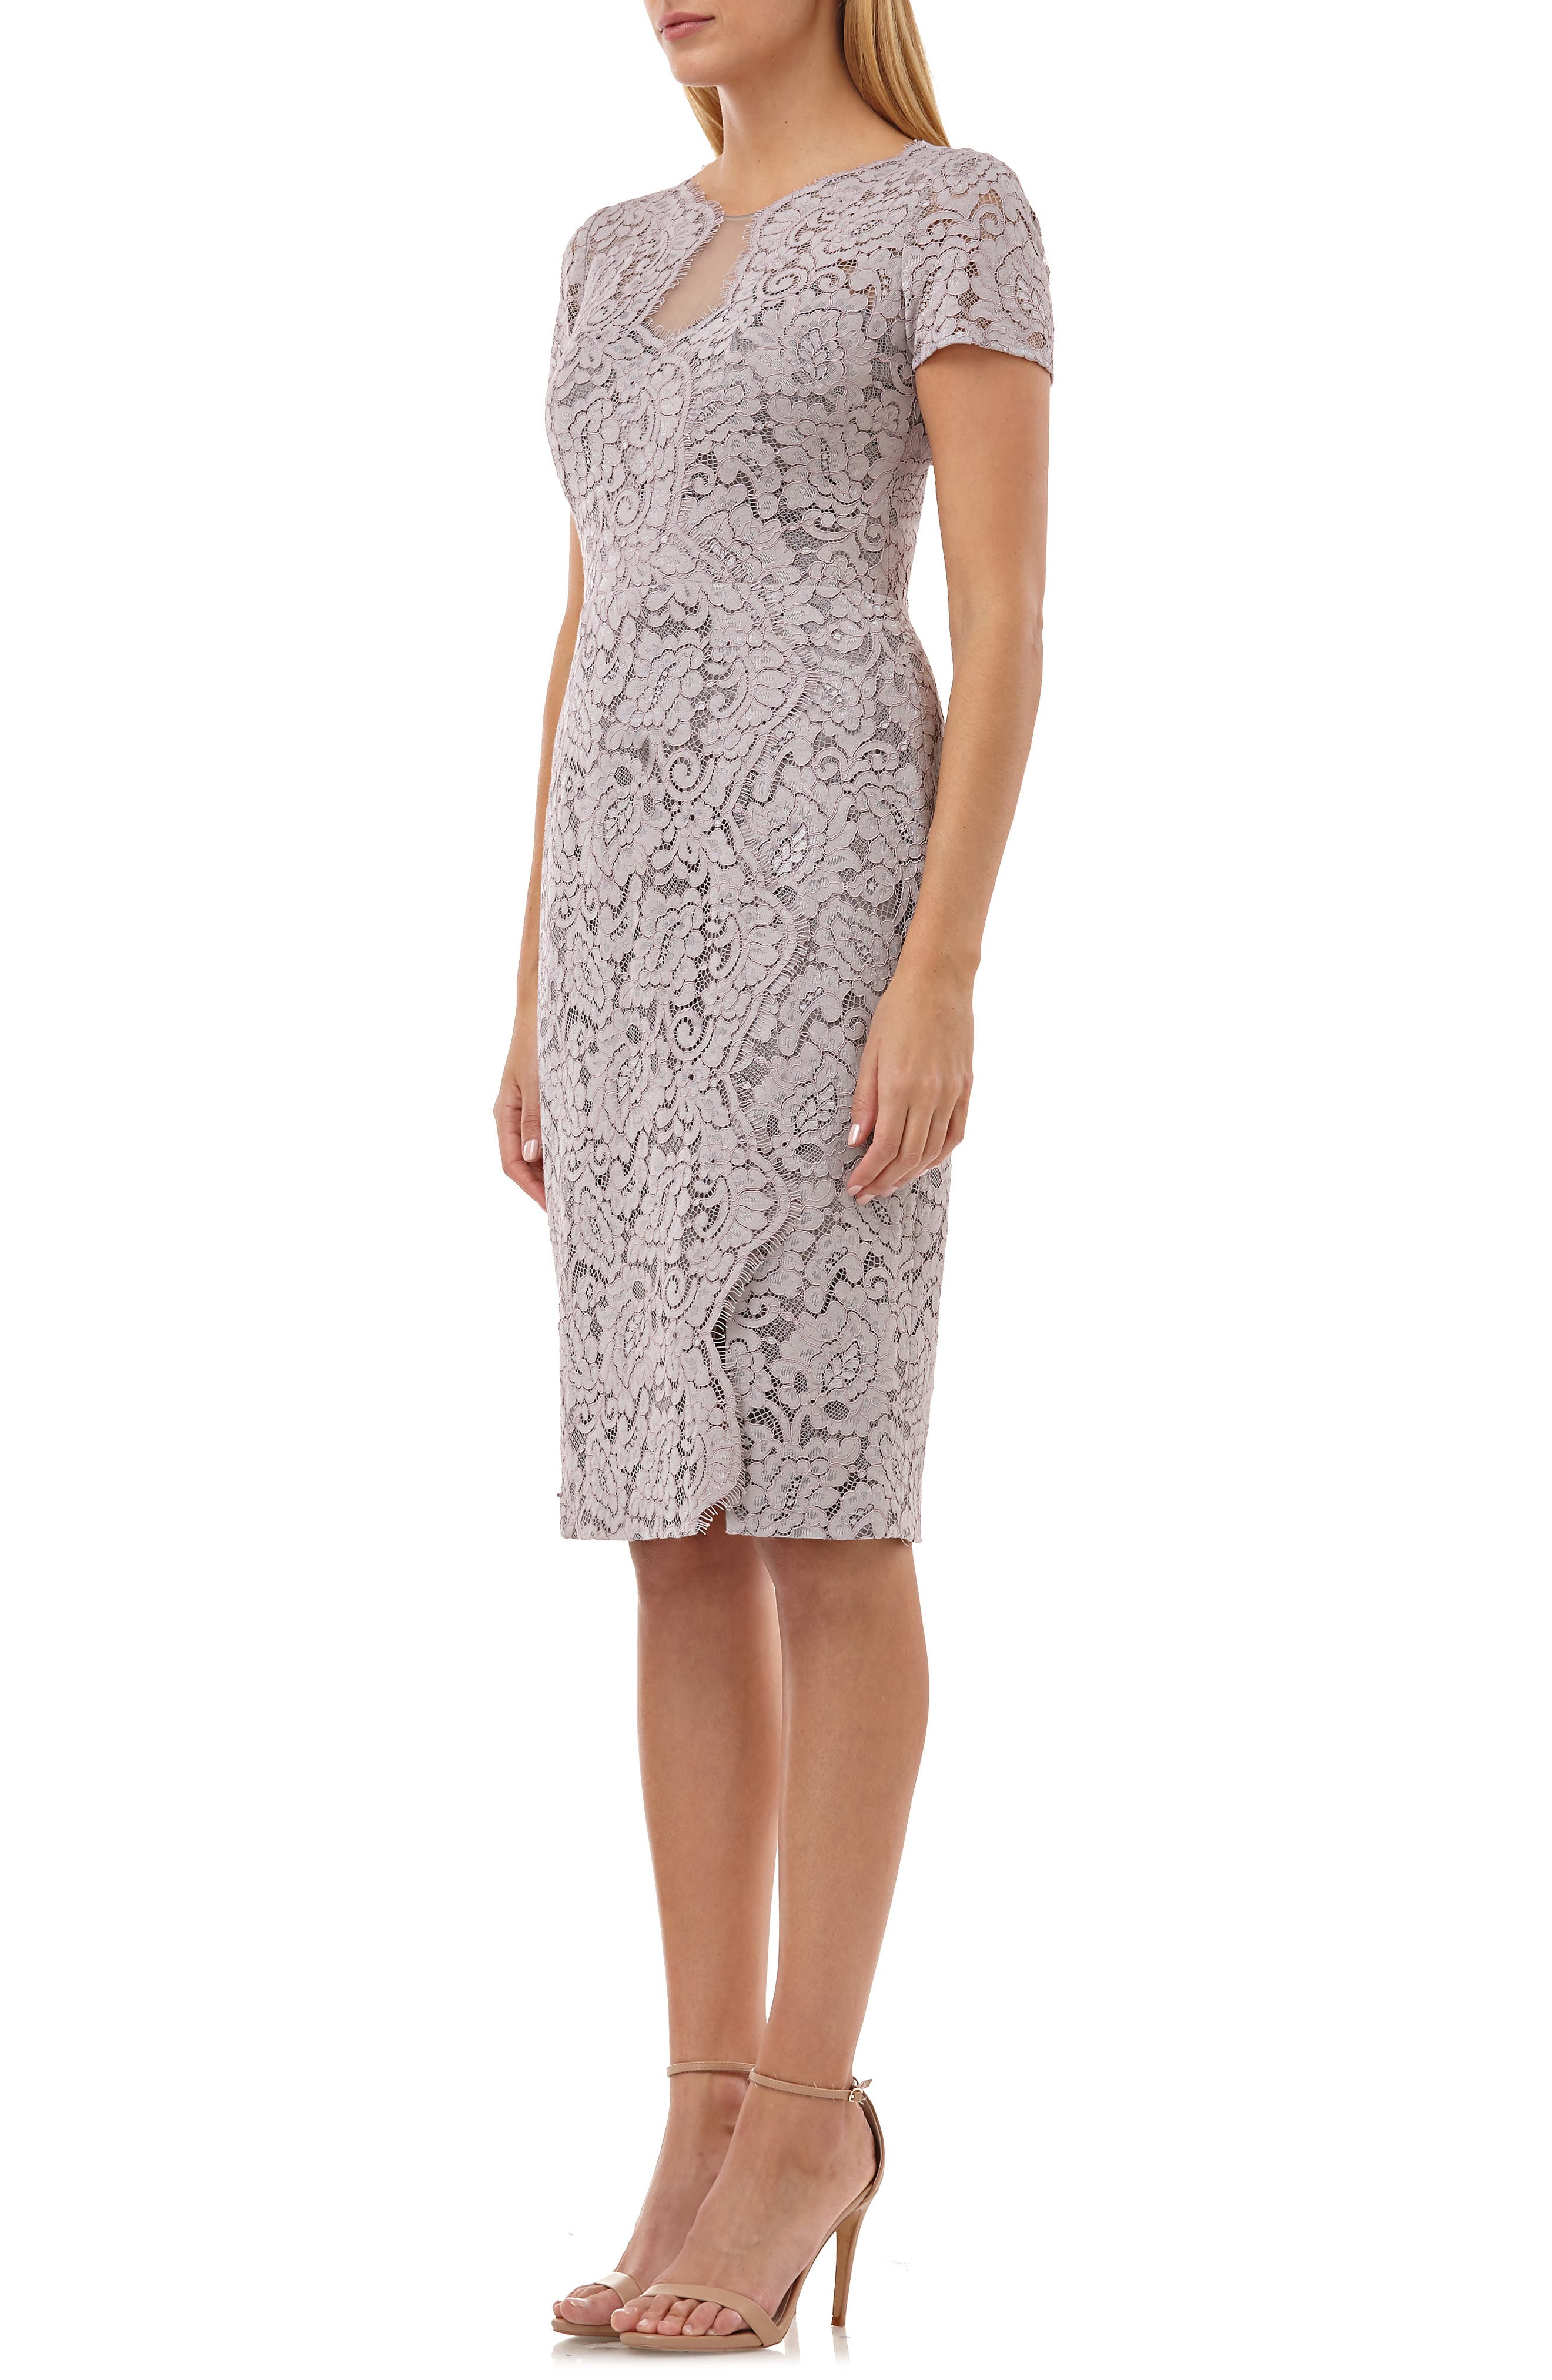 JS COLLECTIONS, Lace Cocktail Dress, Alternate thumbnail 4, color, TAUPE